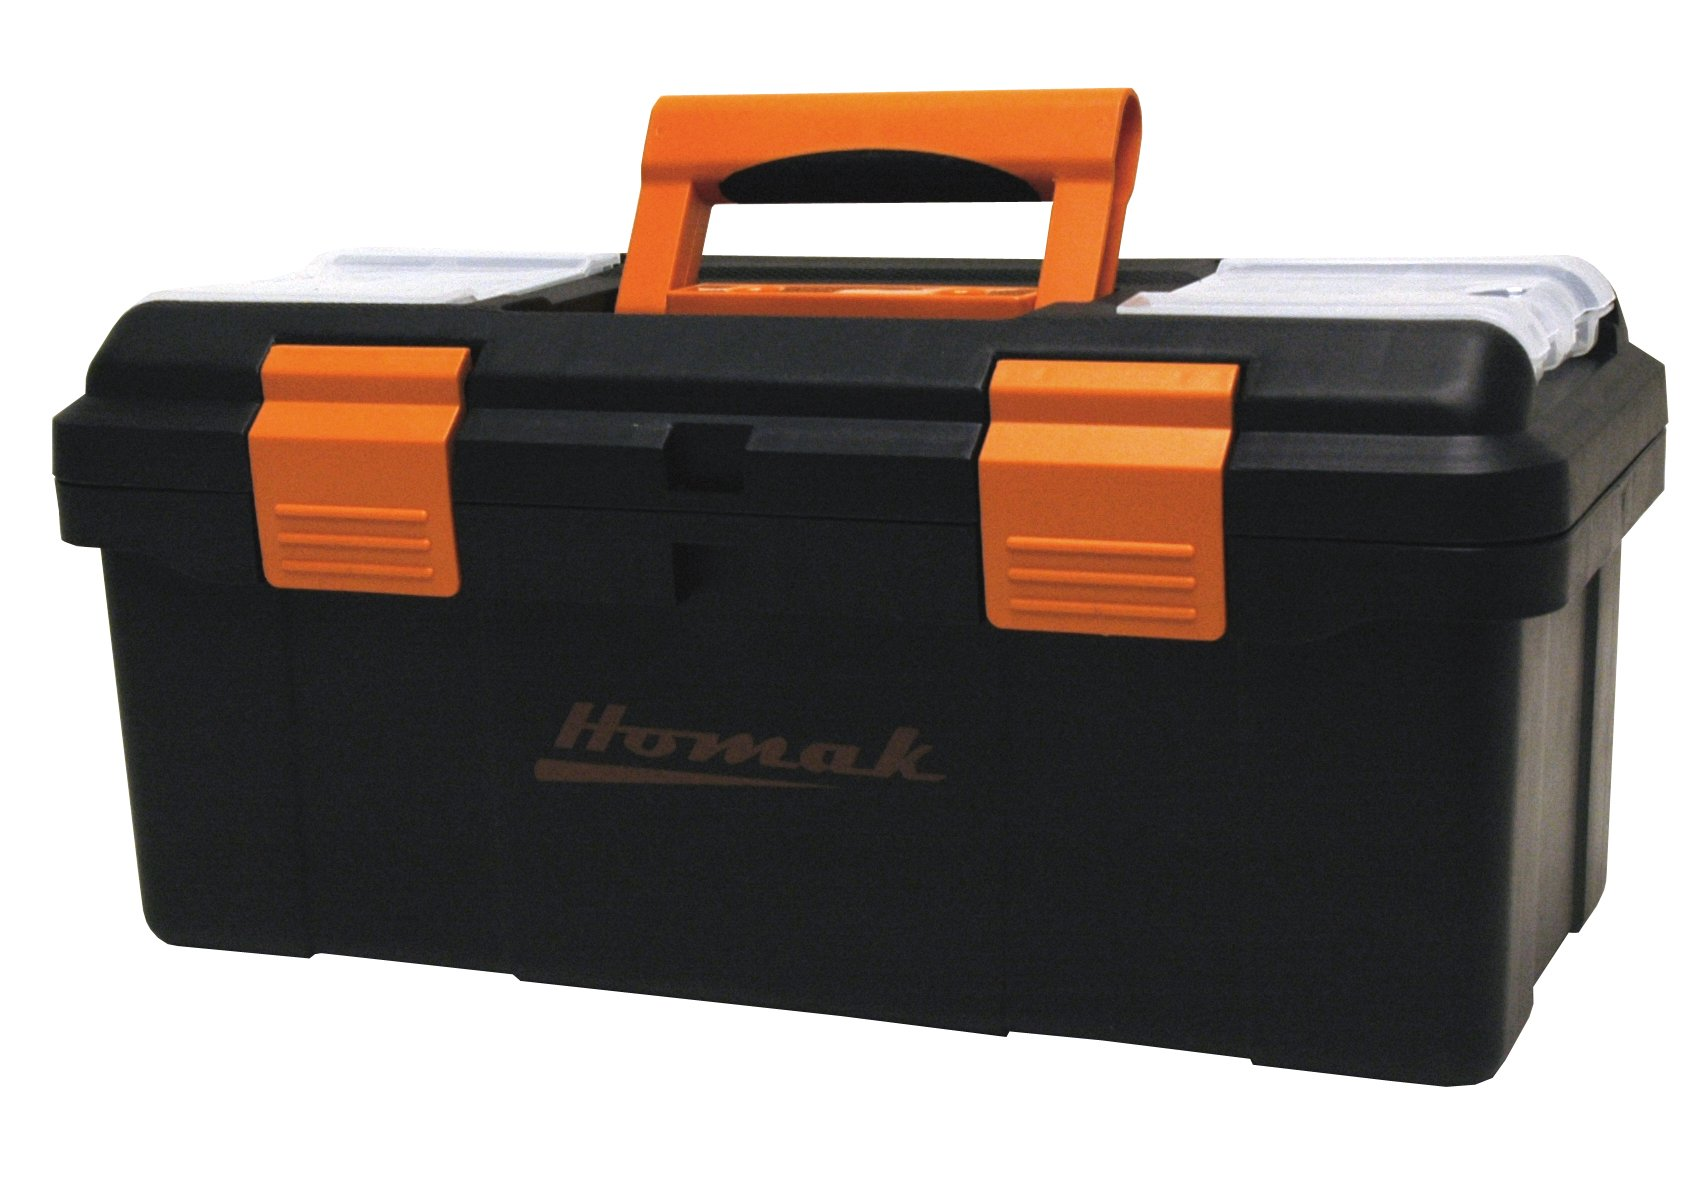 Homak 16 Inch Plastic Tool Box With Tray And Dividers Black Bk00116004 Toolboxes Amazon Com